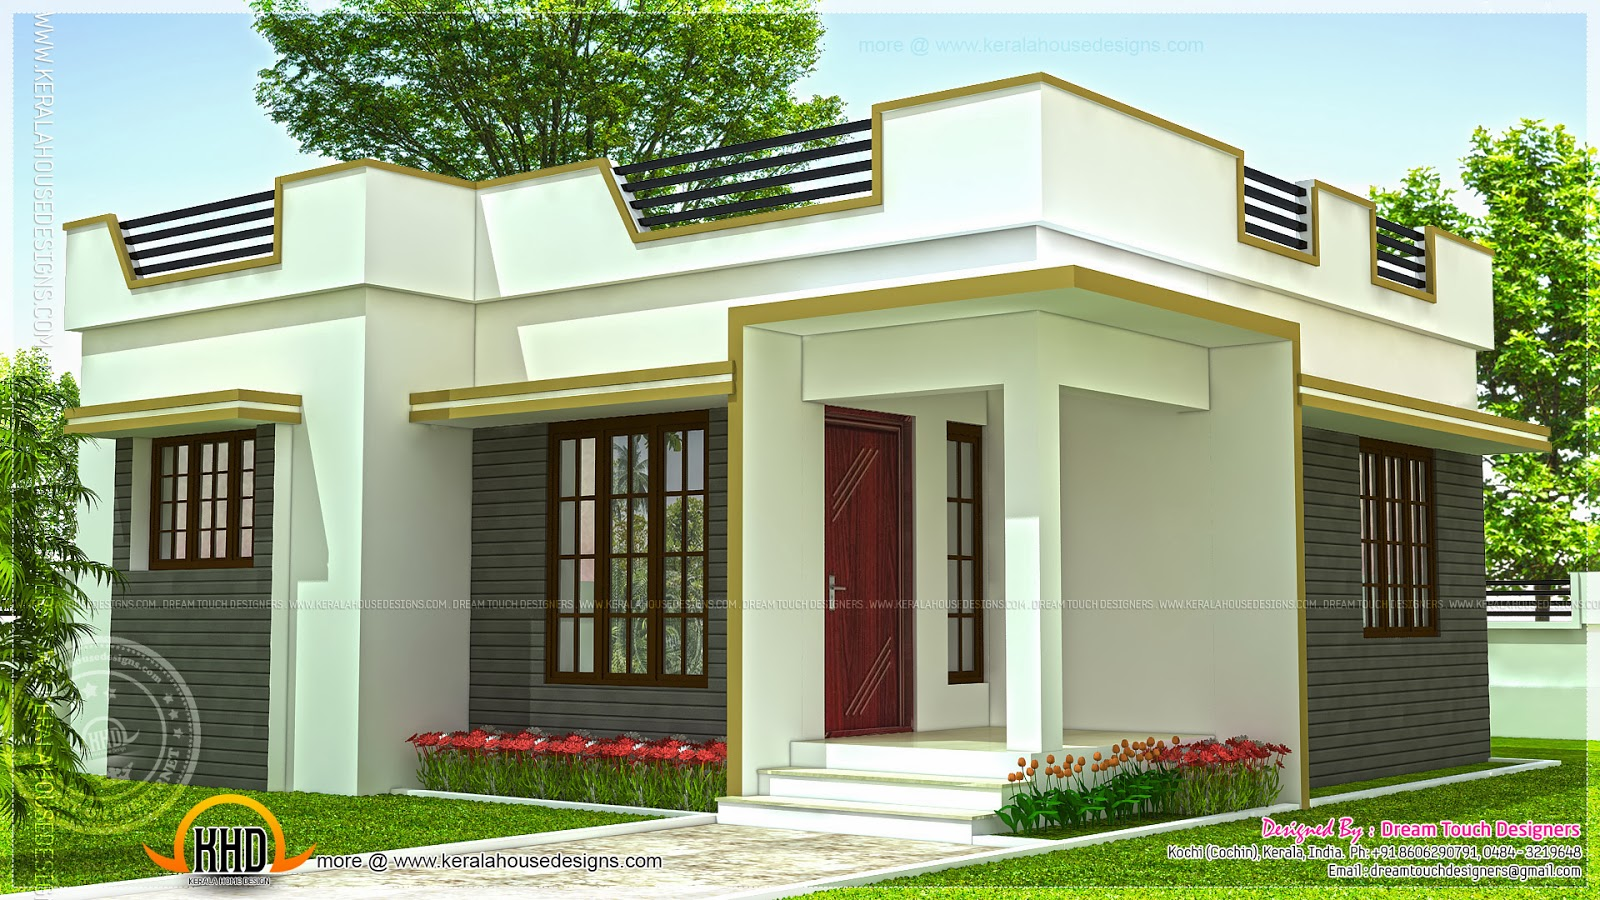 35 small and simple but beautiful house with roof deck for Small house design pictures